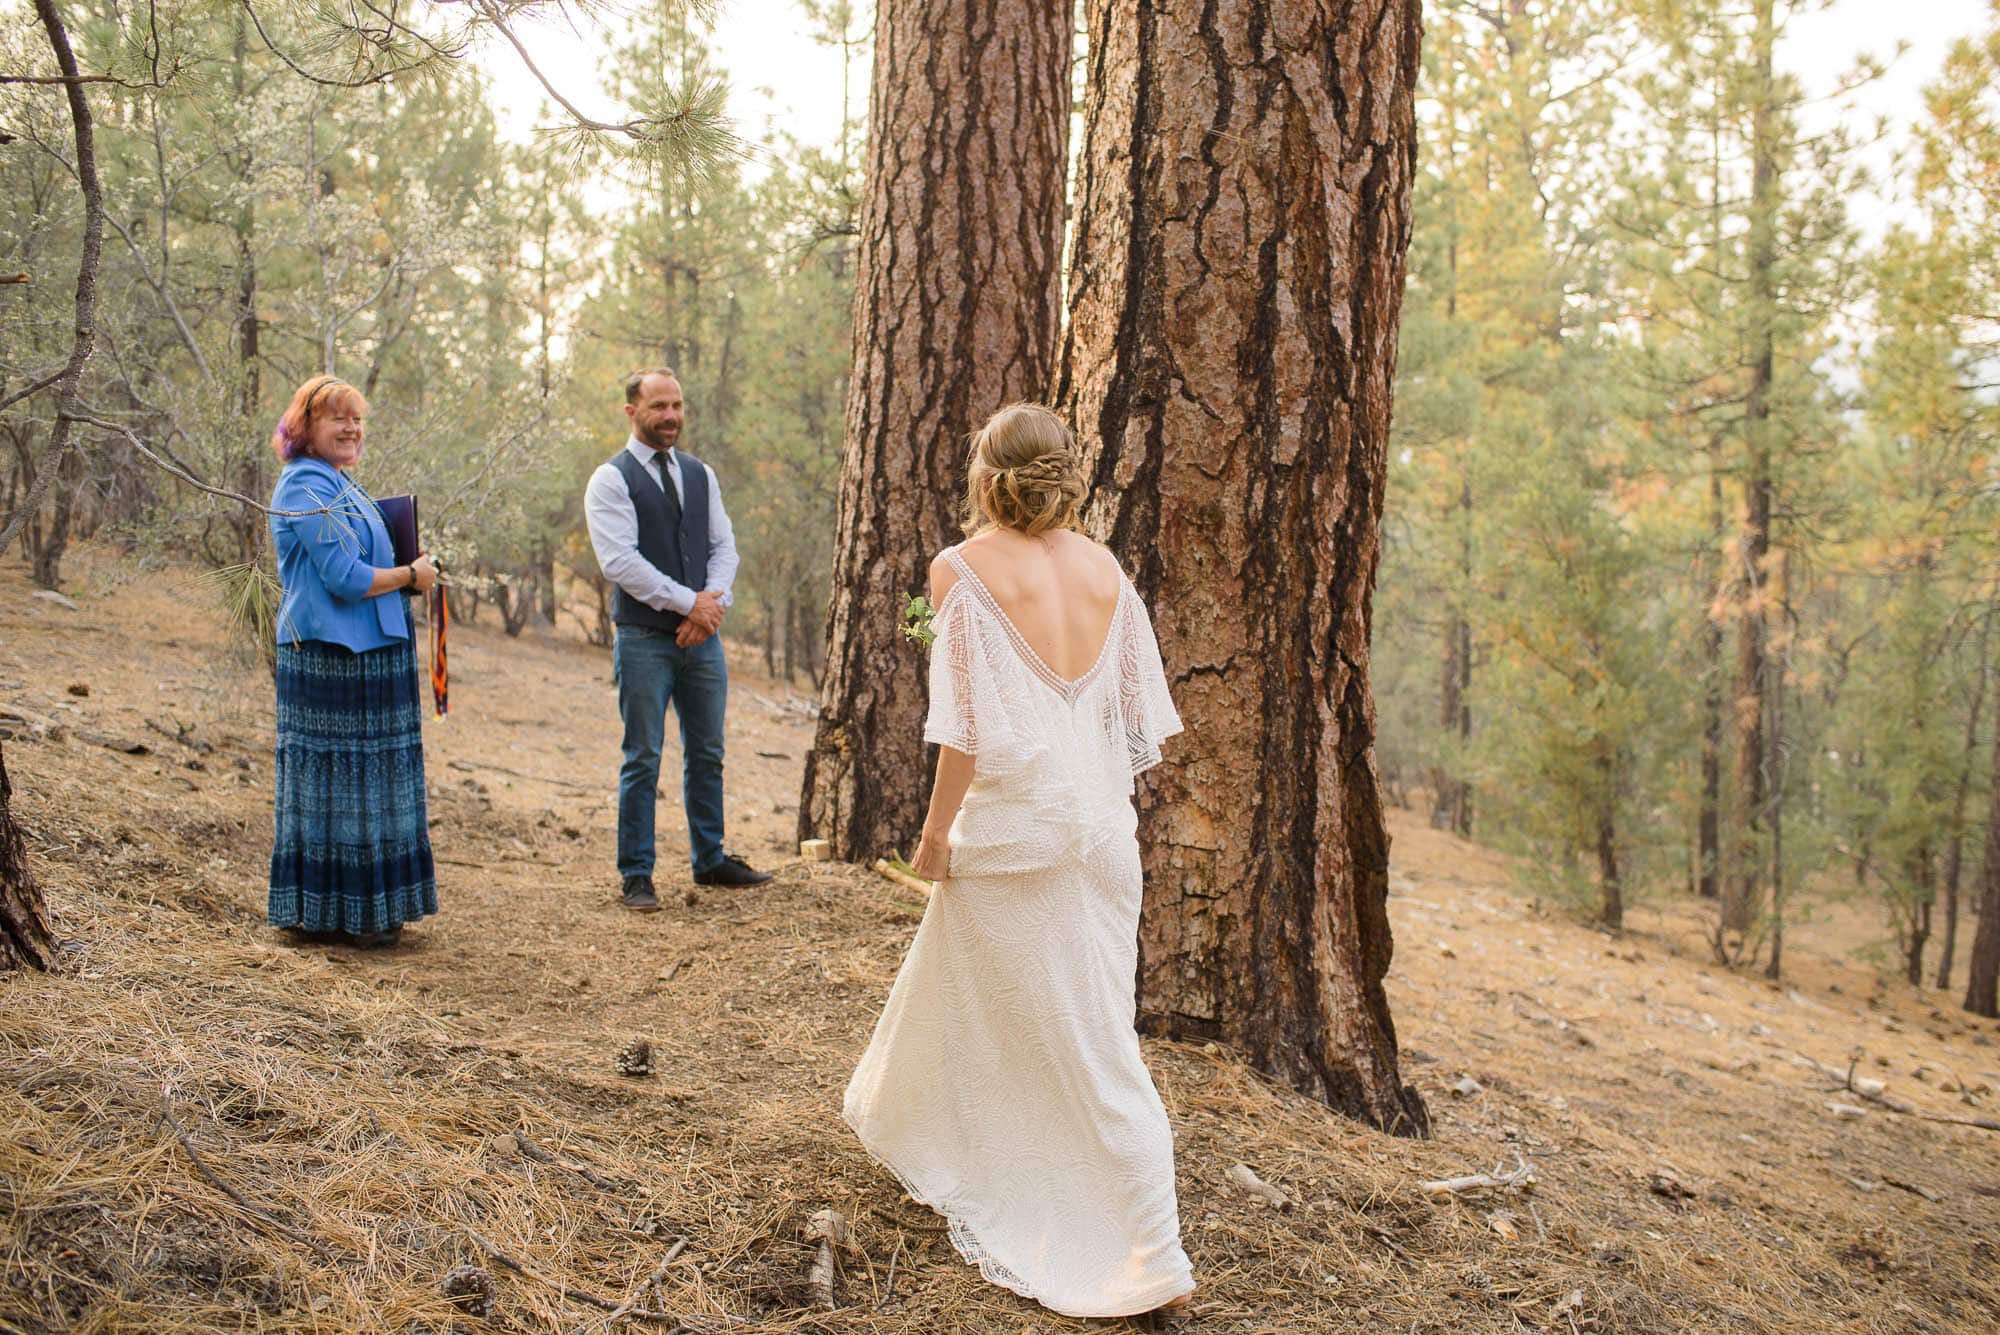 010_Alan_and_Heidi_Big_Bear_Elopement_Holly_Sean